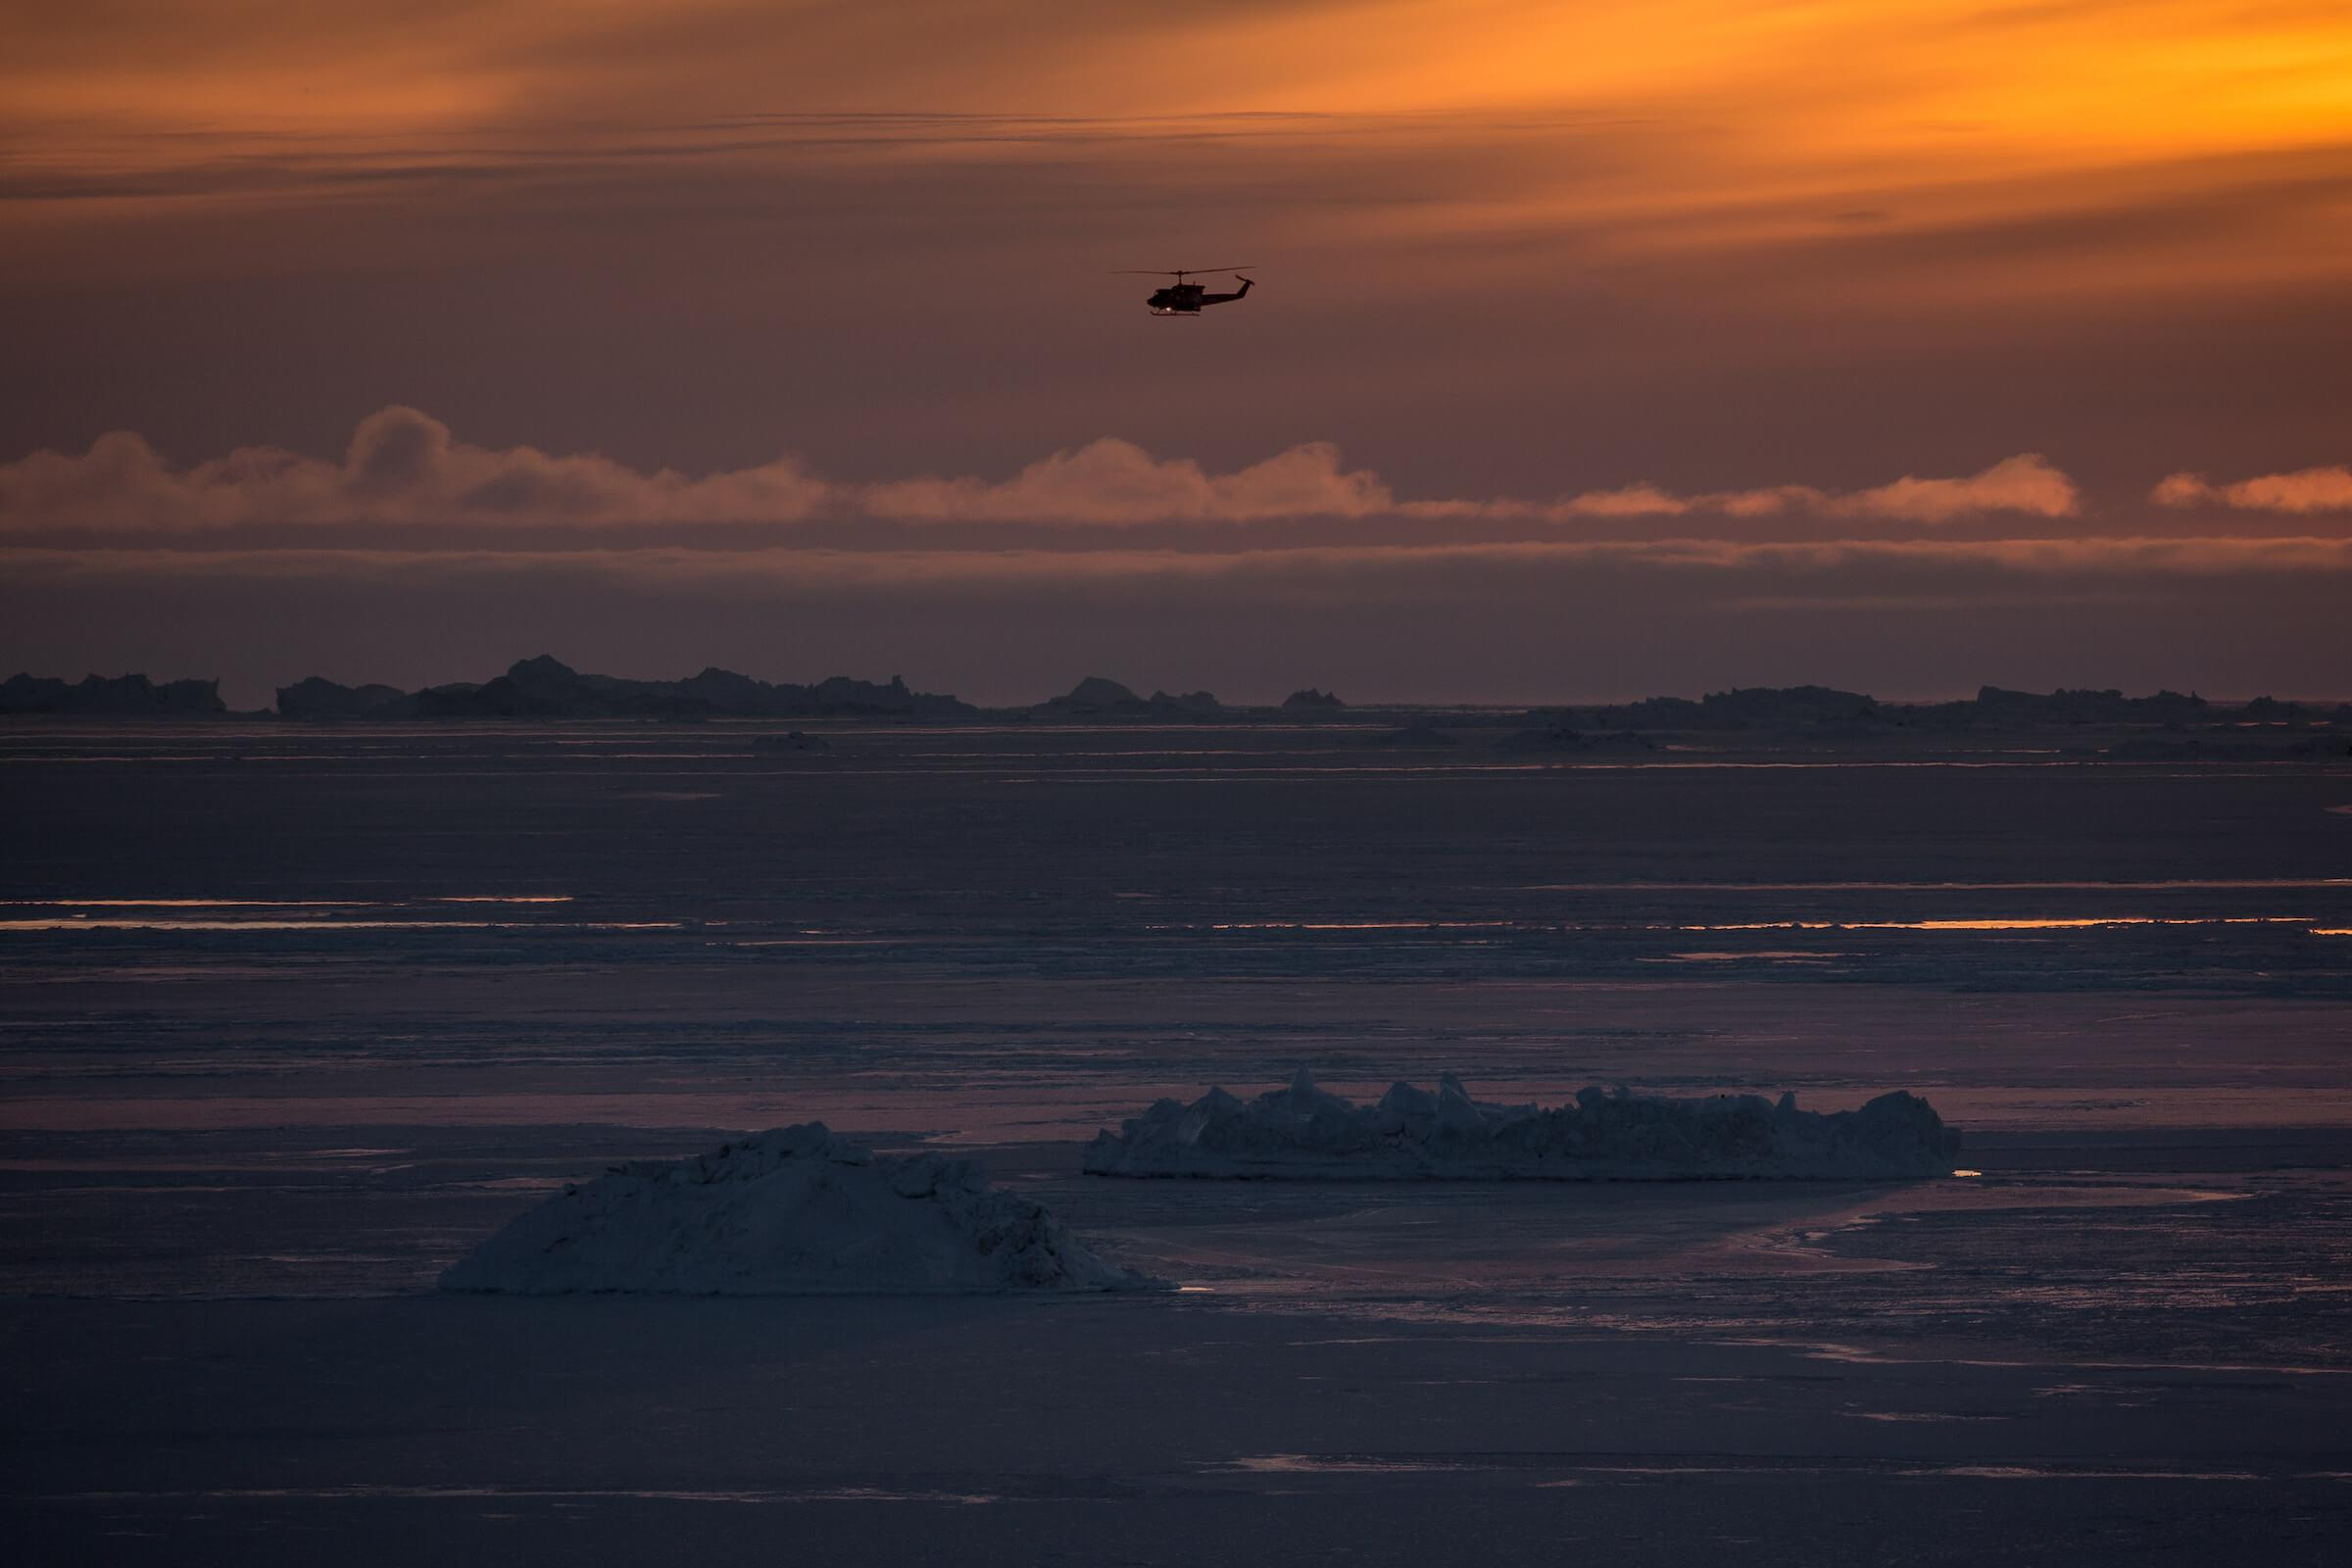 A Bell 212 Air Greenland helicopter over the Disko Bay in the sunset. Photo by Mads Pihl